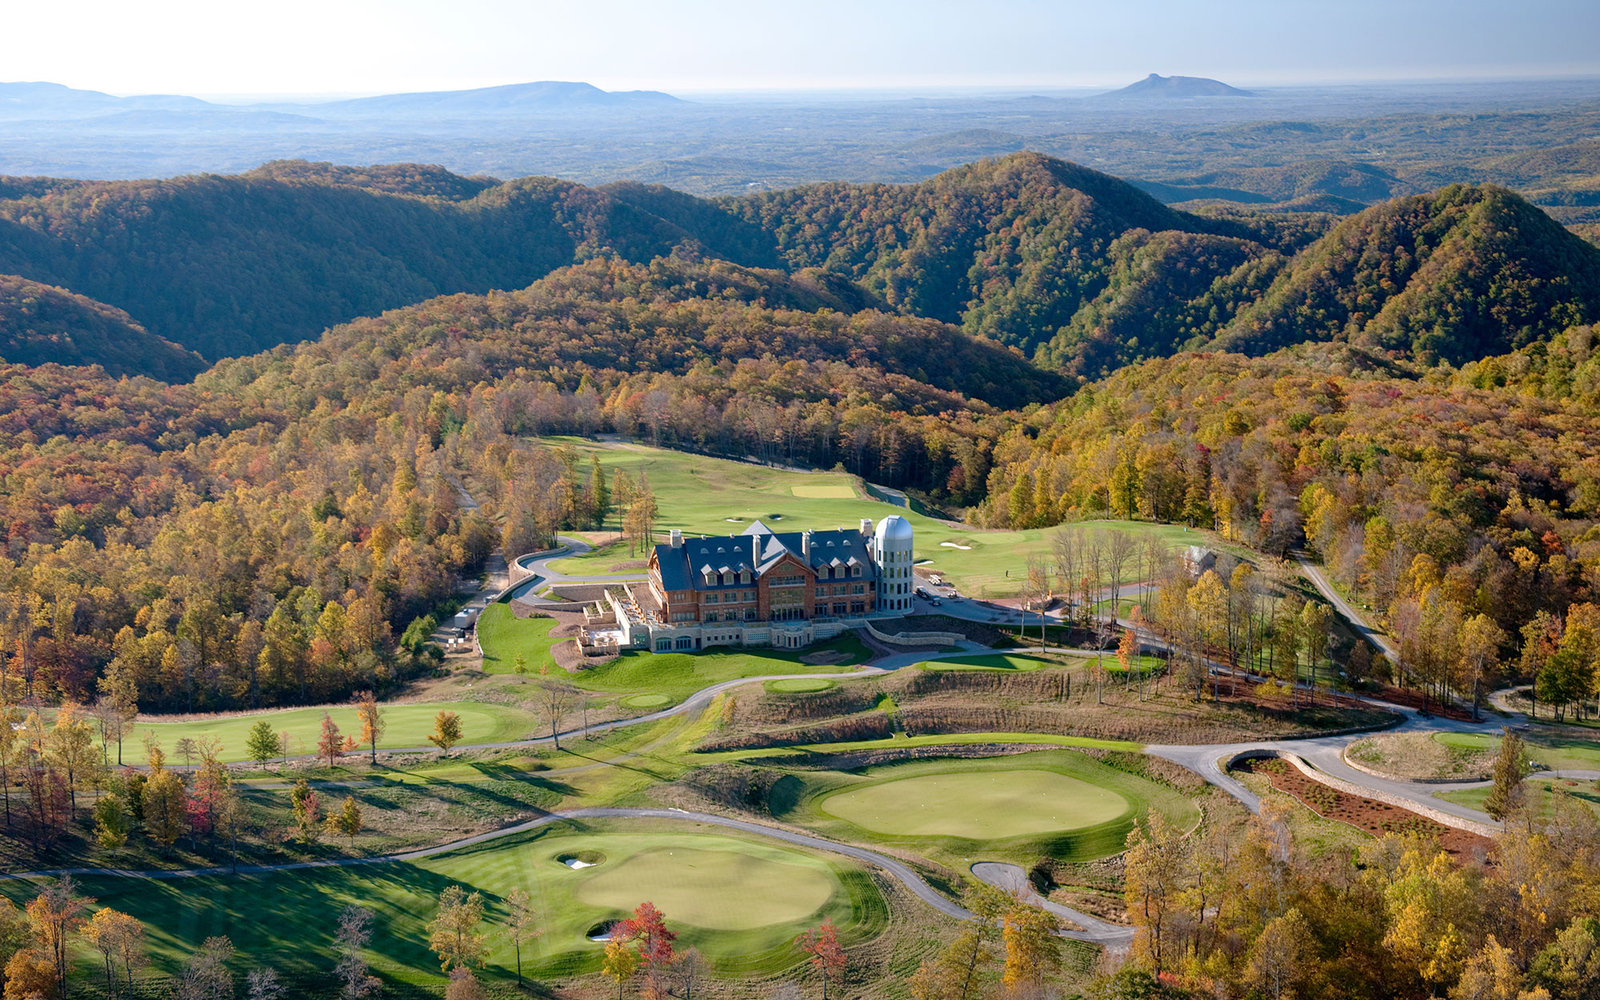 Virginia: The Lodge and Cottages at Primland